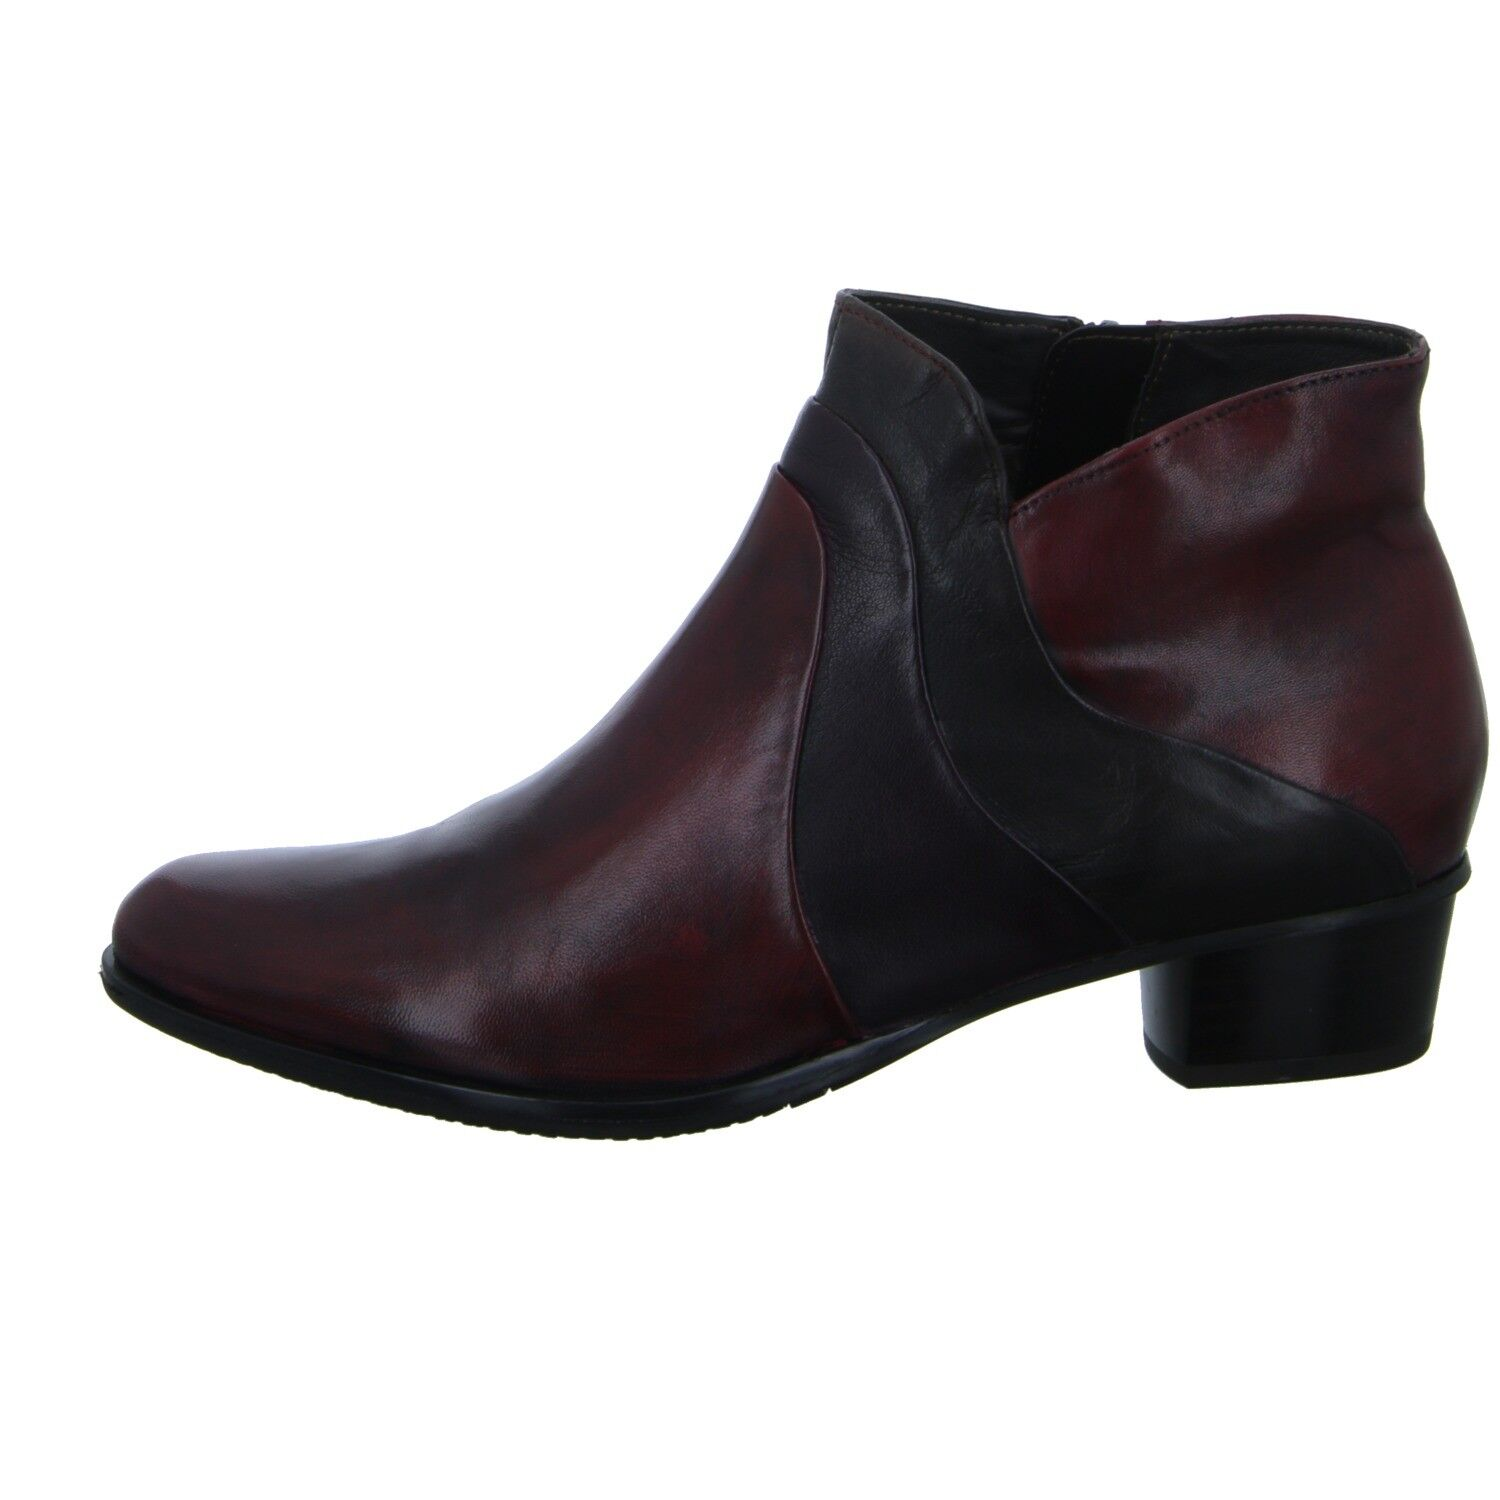 Red Boxx Ladies Ankle Boots 75.253.591.009 Burgundy